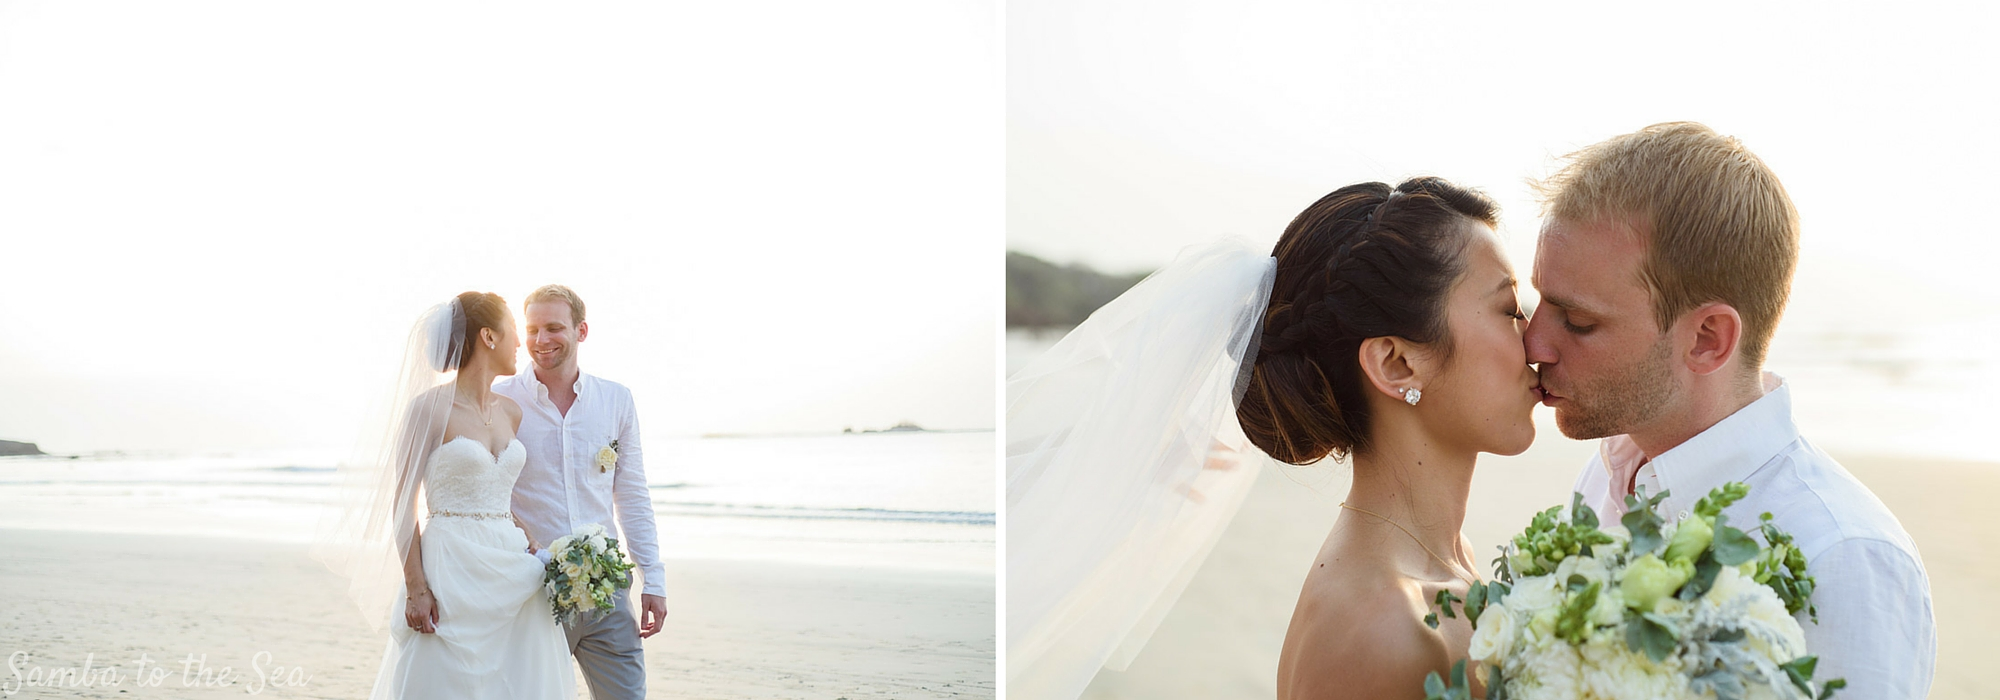 Amy and AJ on the beach after their wedding in Tamarindo. Photographed by Kristen M. Brown, Samba to the Sea Photography.